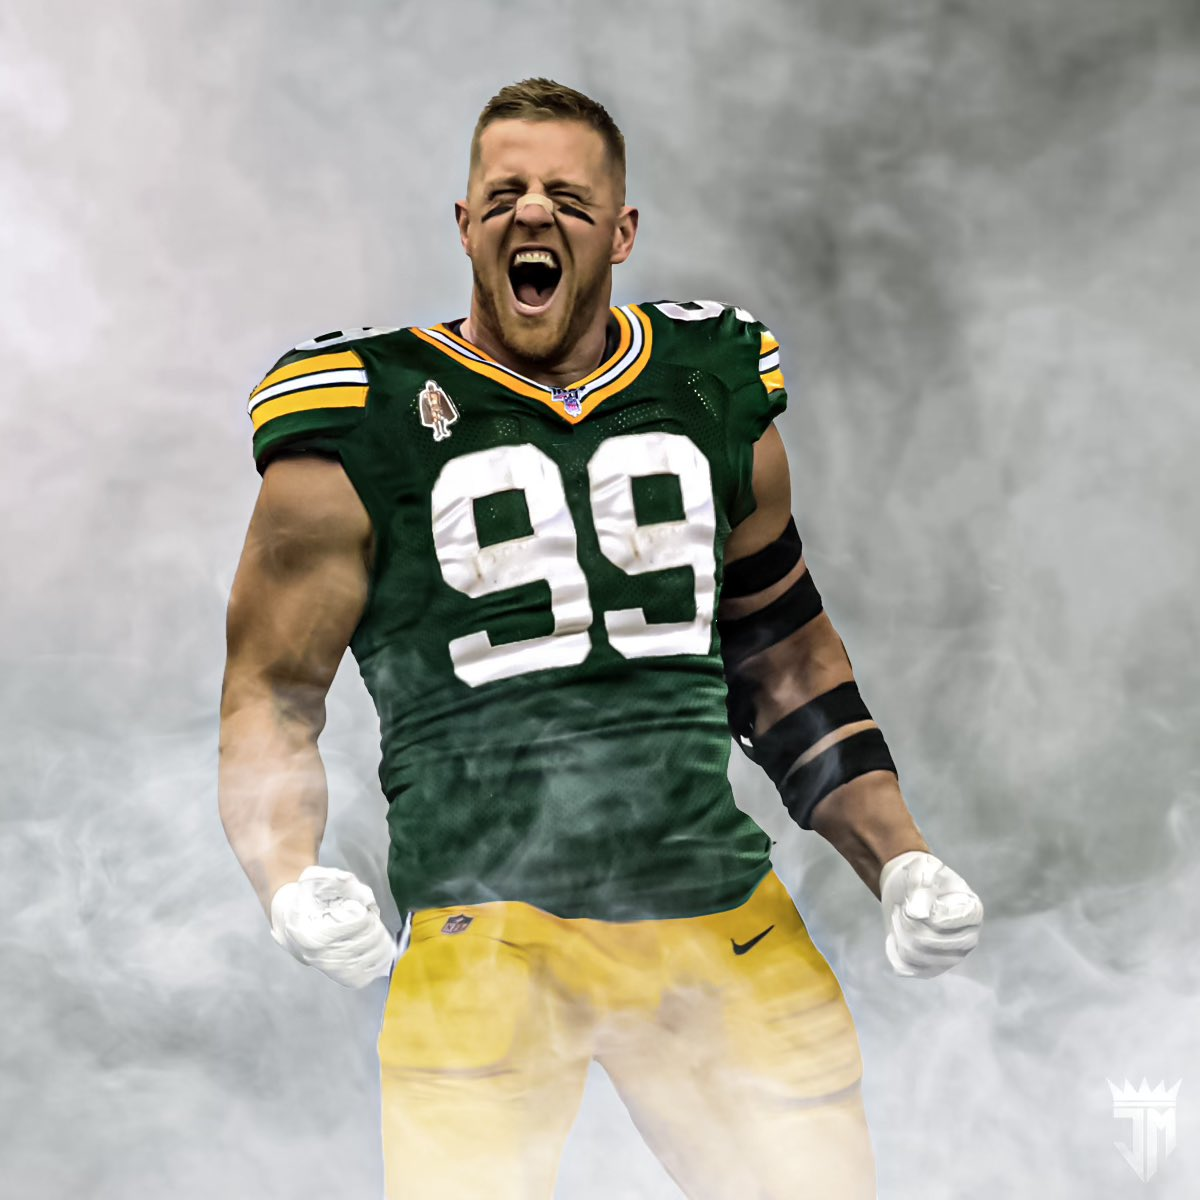 You guys asked for it, took me a minute but damn does he look good in green and gold. Come home @JJWatt. It's time. #BringJJHome #GoPackGo